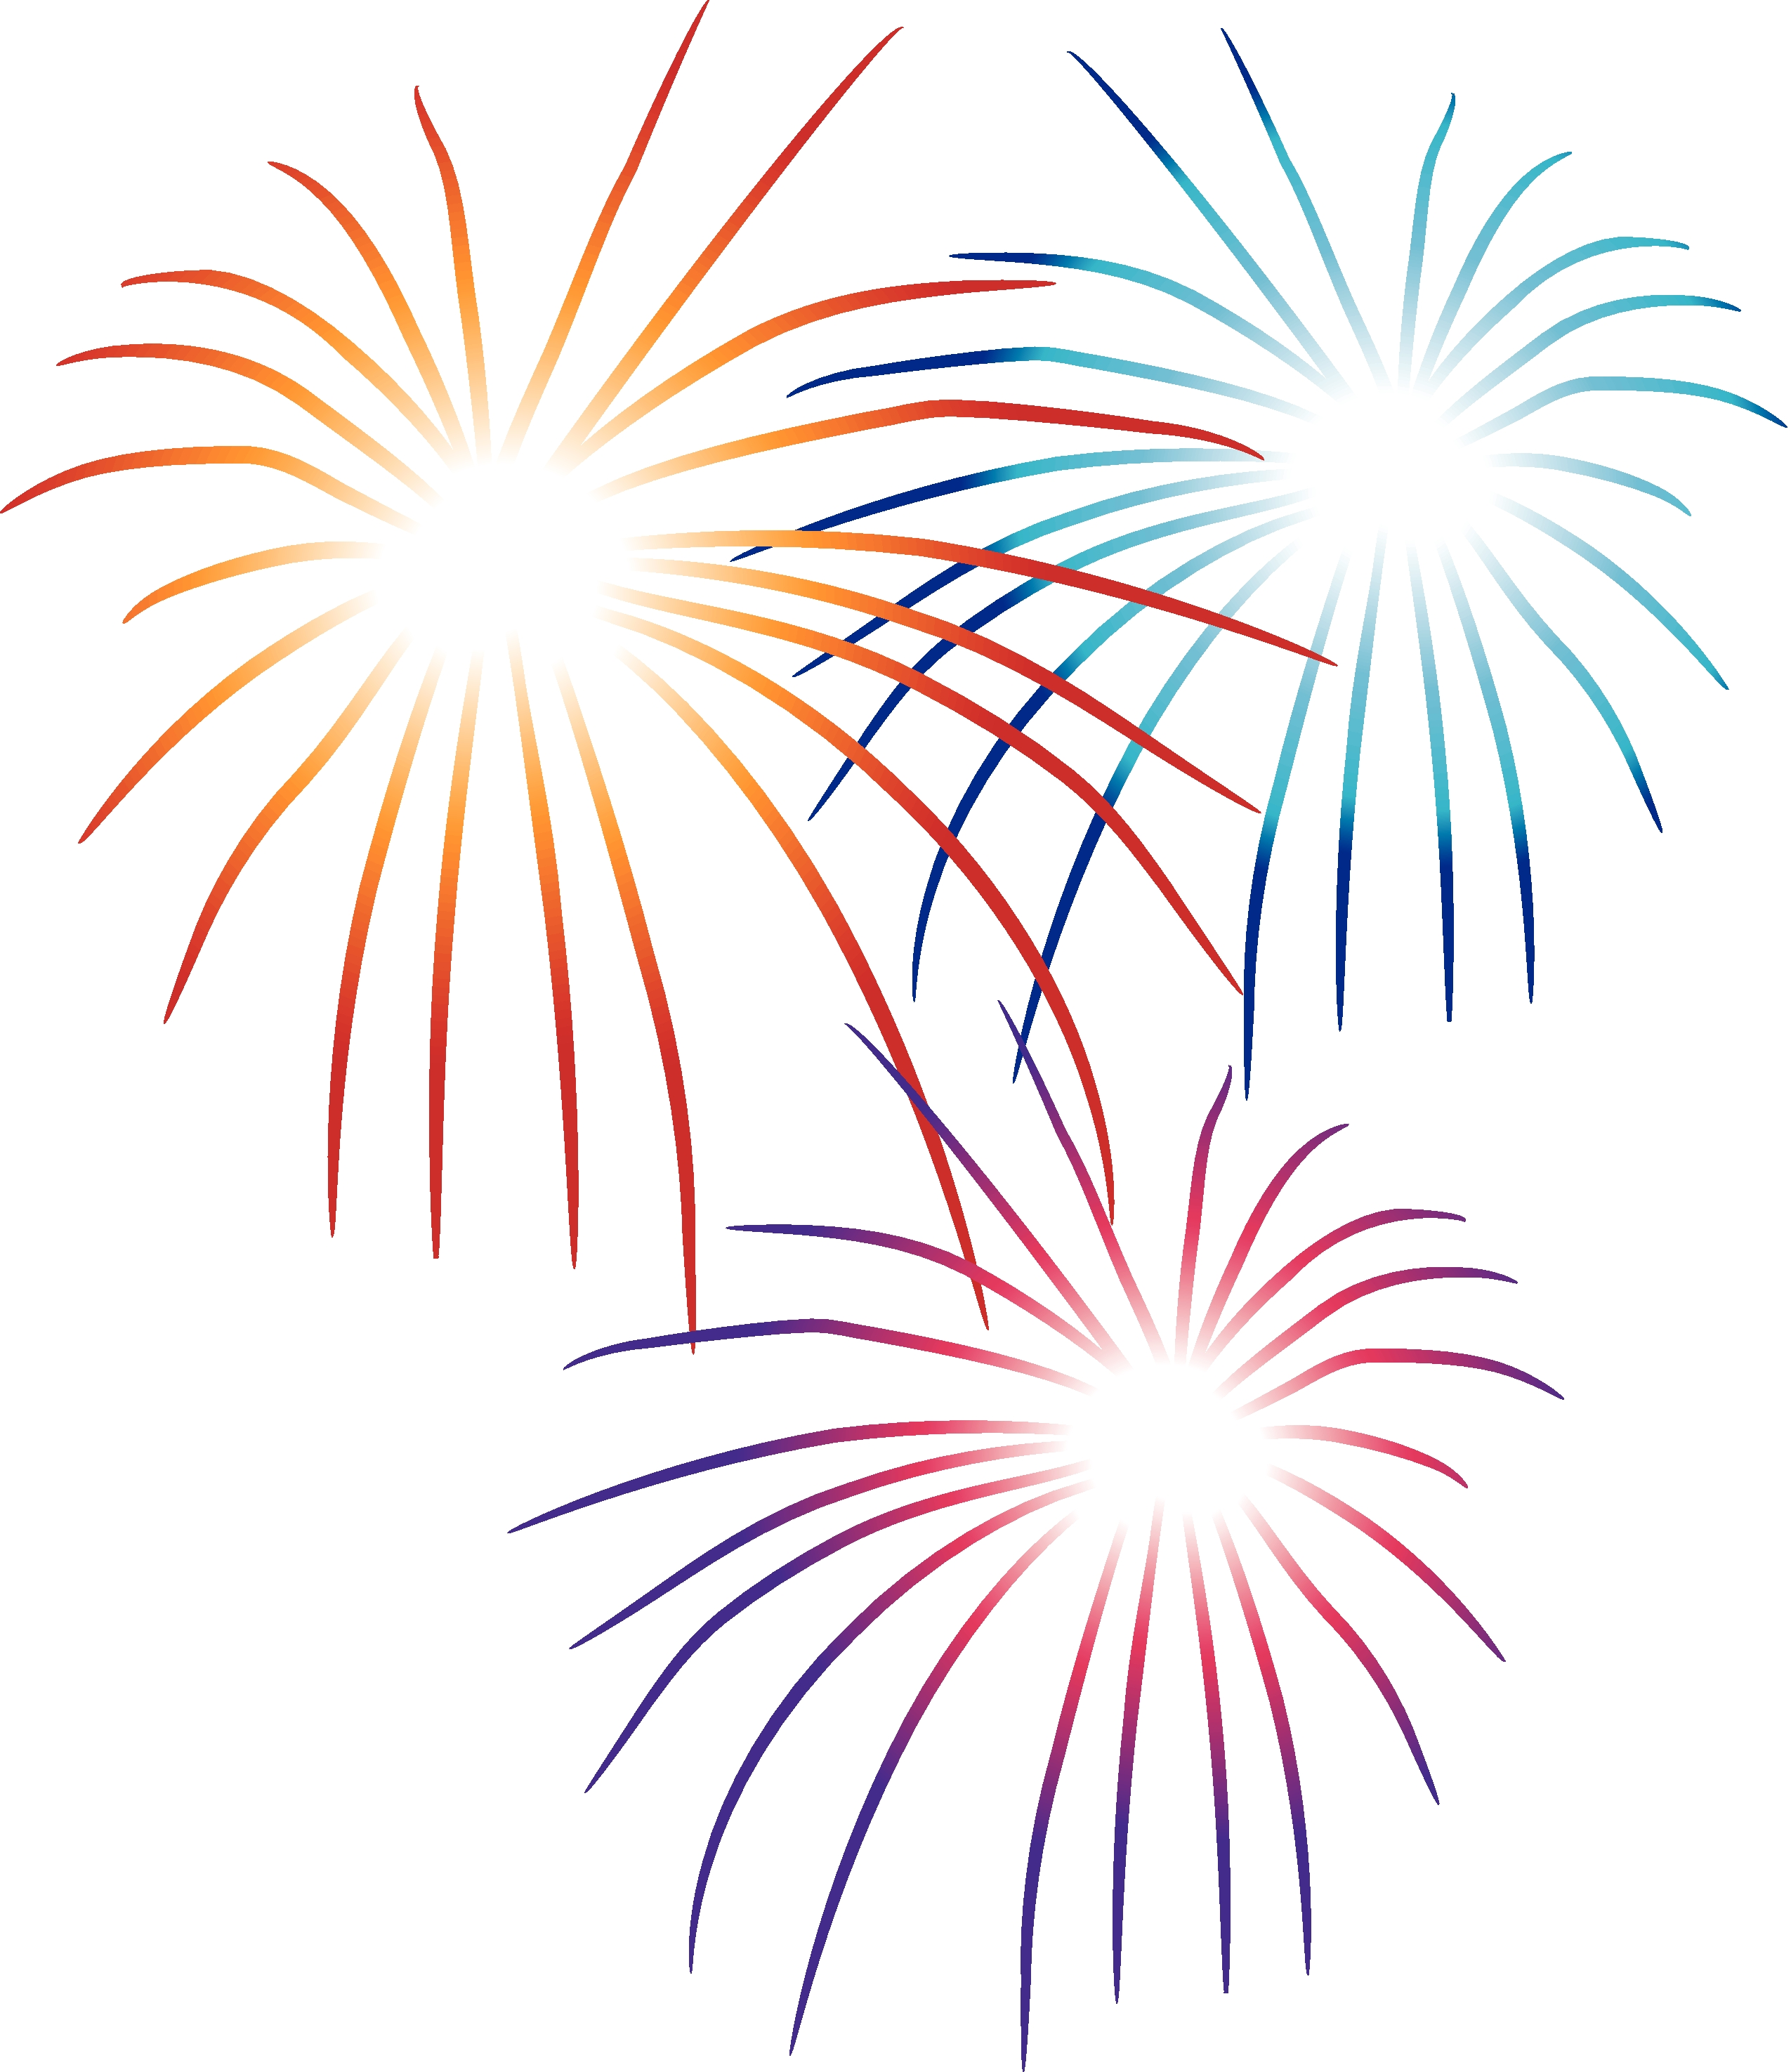 Cartoon fireworks clipart picture royalty free Pictures Of Cartoon Fireworks | Free download best Pictures Of ... picture royalty free